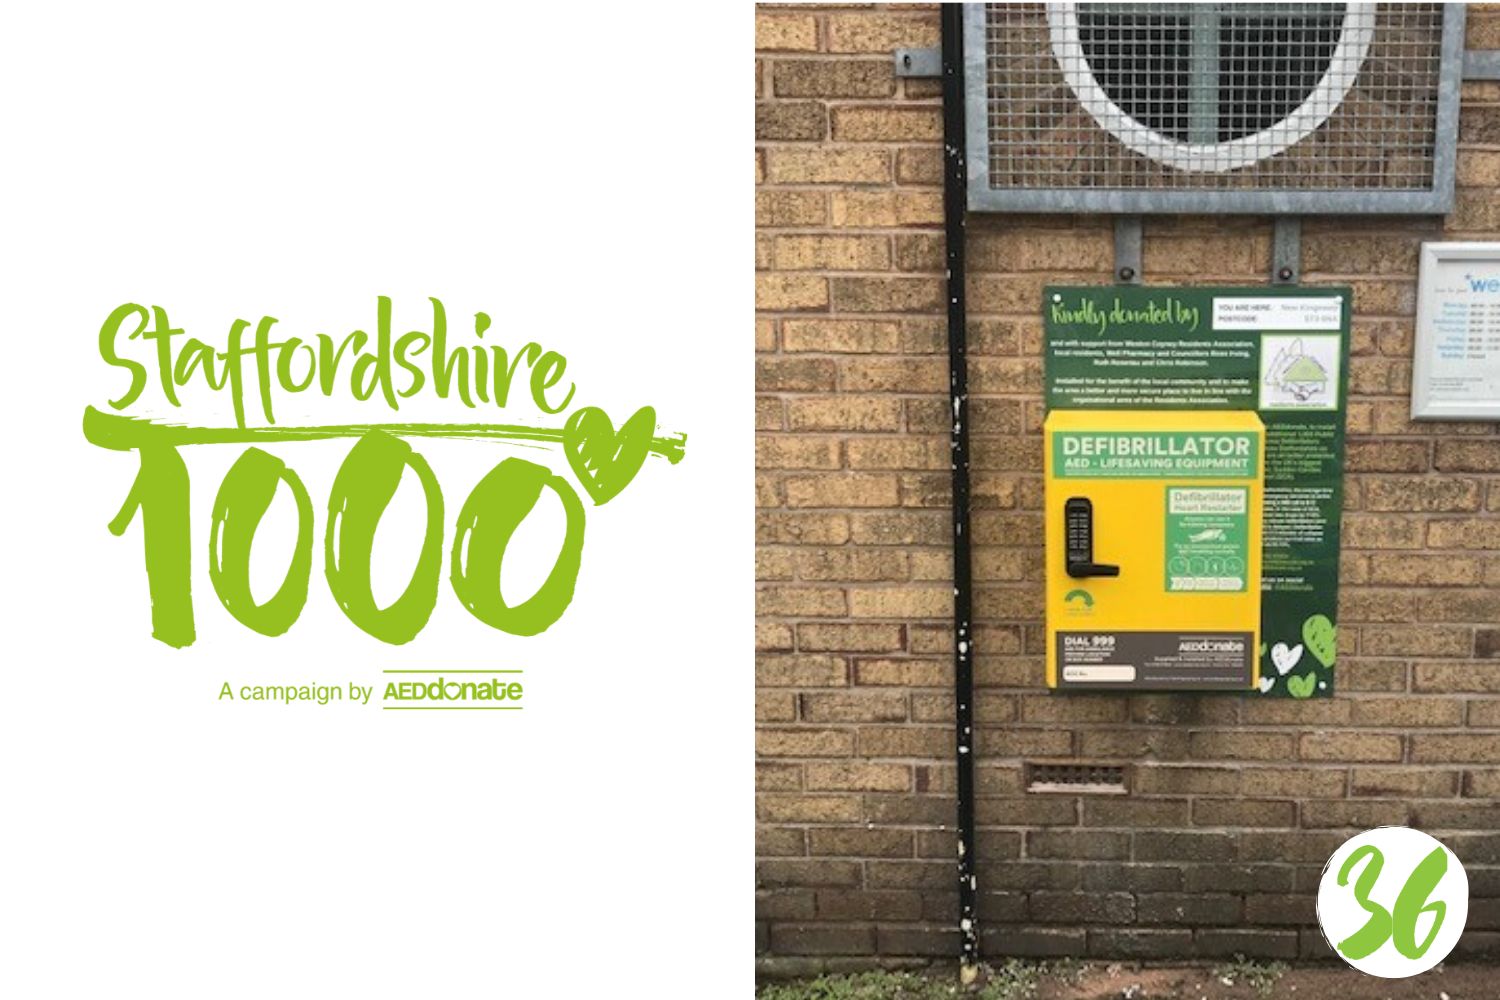 New defibrillator for Weston Coyney